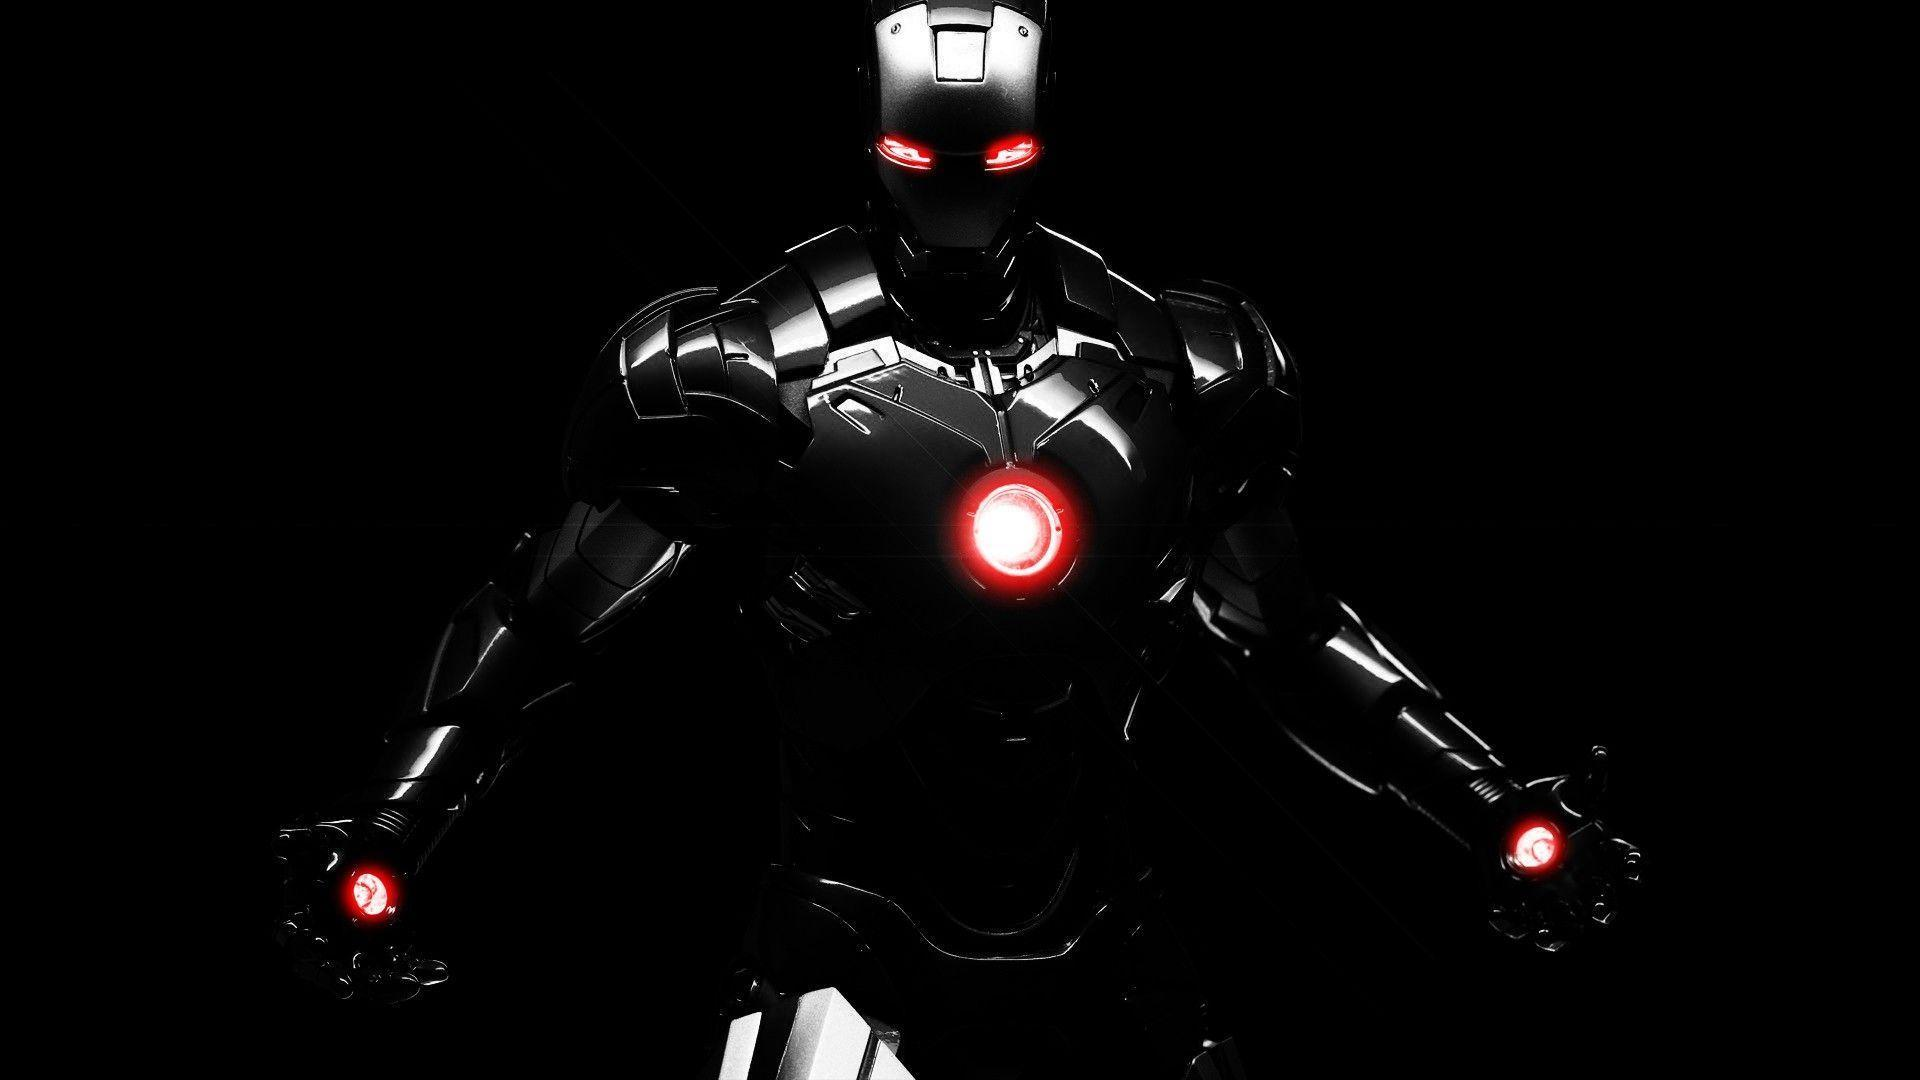 Iron Man 4 Strange Movie Wallpaper HD #7679 Wallpaper | High ...